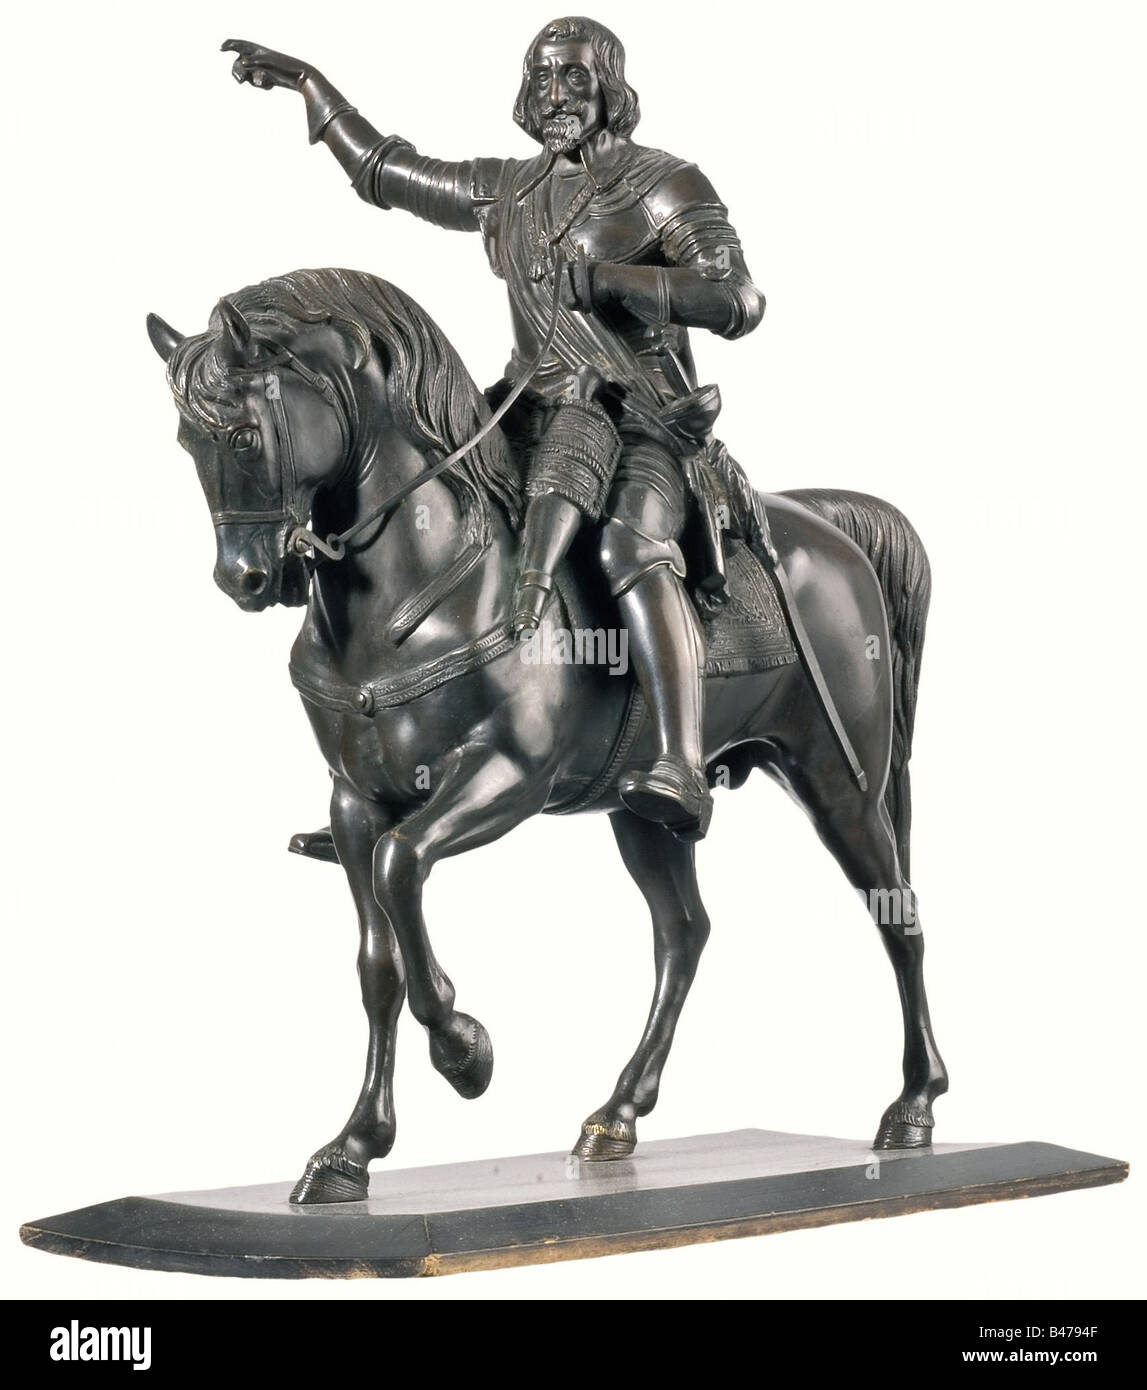 Elector Maximilian I - a bronze sculpture, late 19th century. Bronze with dark patina. Figure of the Elector after - Stock Image